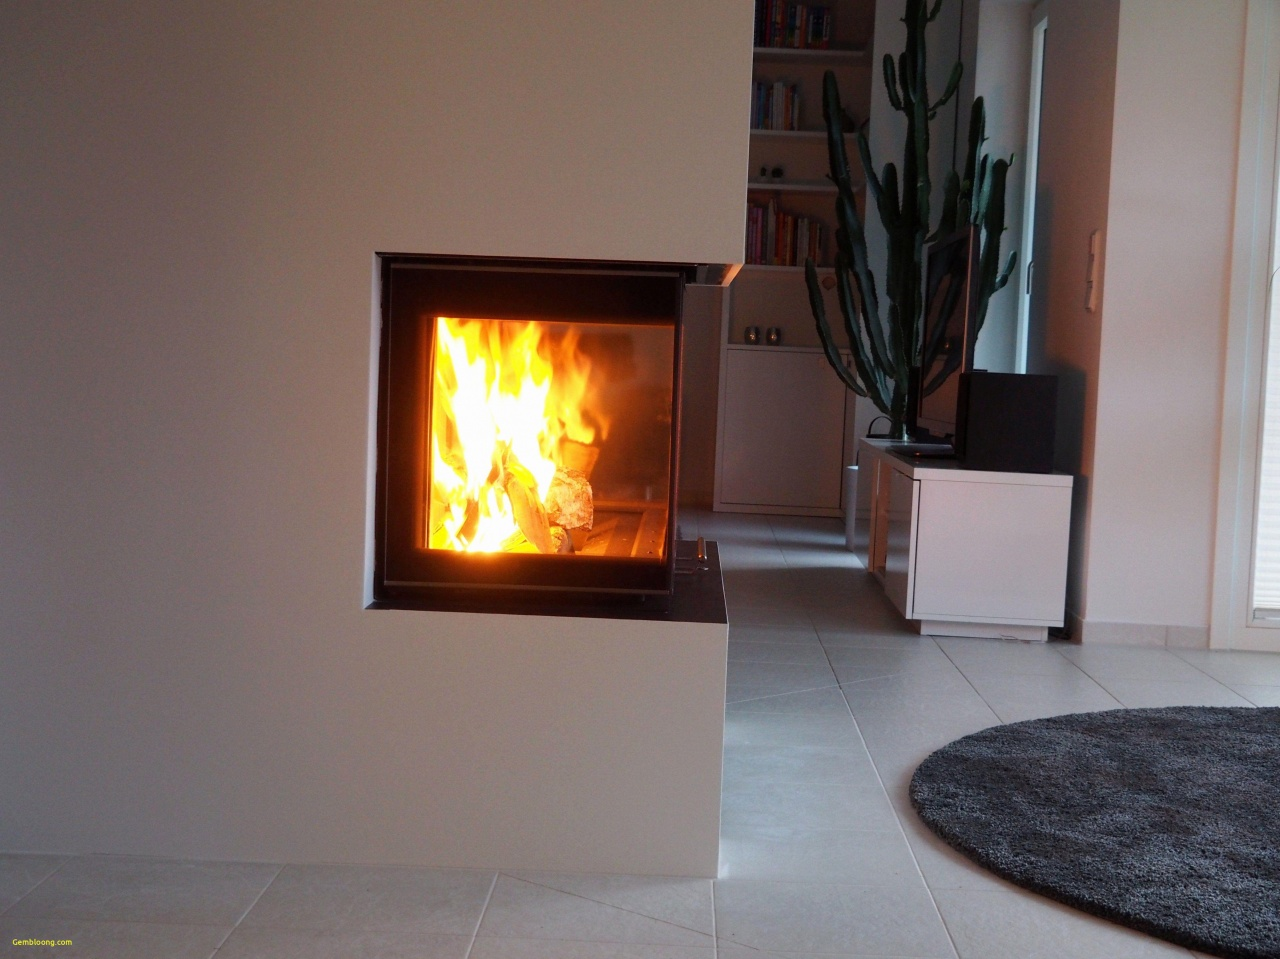 Full Size of How To Start A Fire In The Fireplace   Kaminofen Wohnzimmer Neu Panorama Kamin Preis ? Temobardz Wohnzimmer Wohnzimmer Kamin